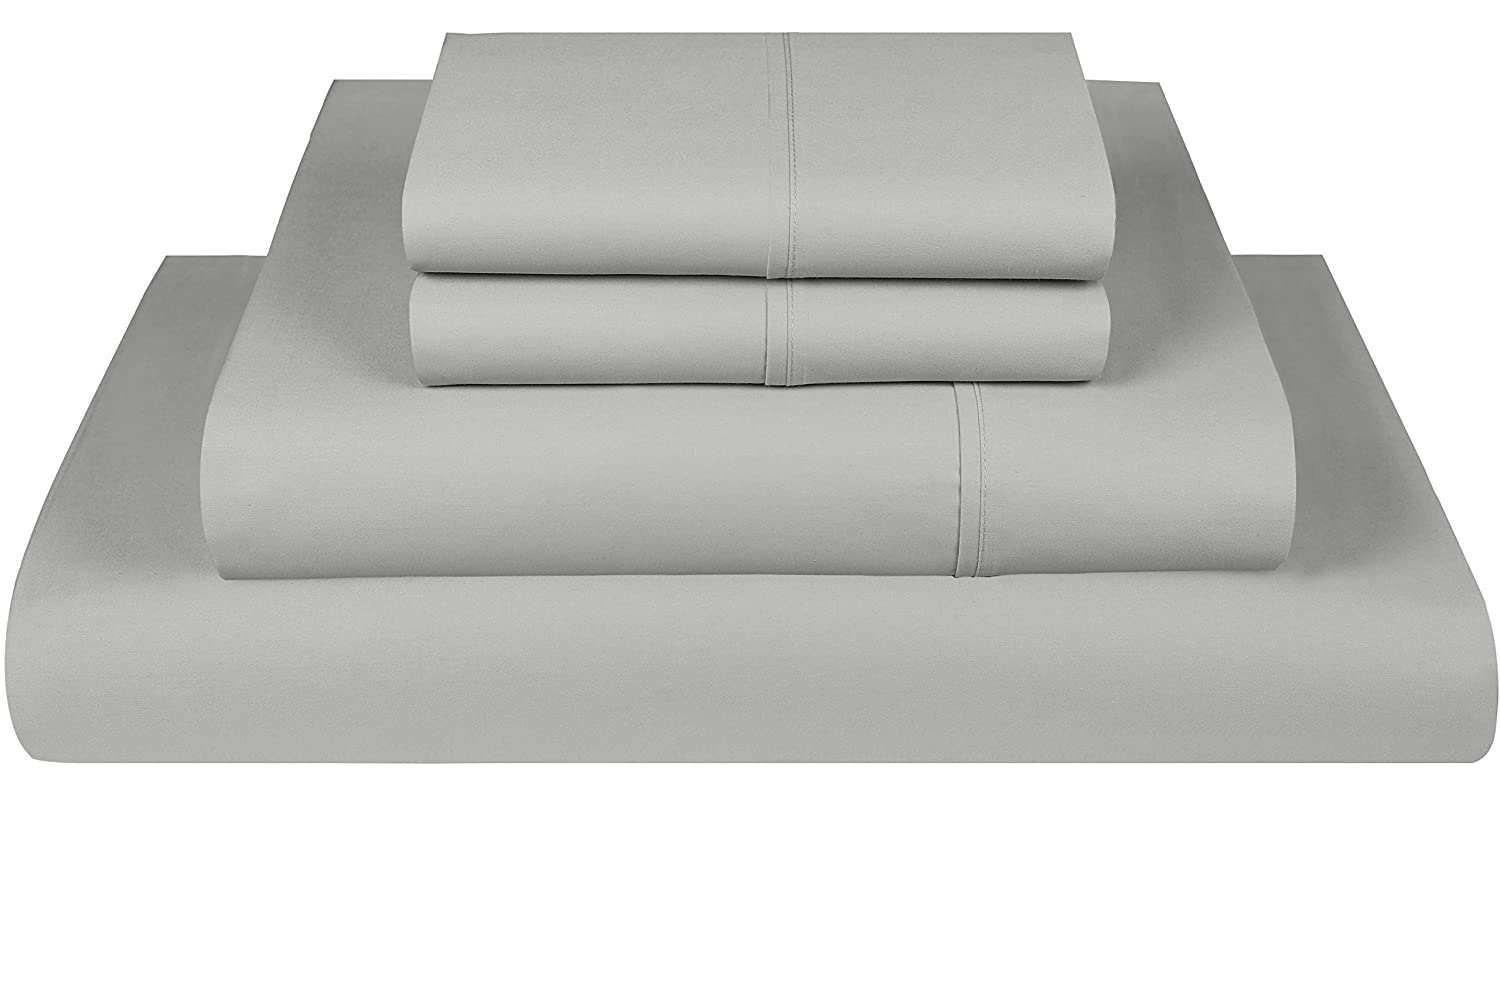 Threadmill Home Linen 800 Thread Count 100% ELS Cotton, Solid Sheet Set, Twin Sheets, Luxury Bedding, Twin 3 Piece Sheet Set,Smooth Sateen Weave, Silver